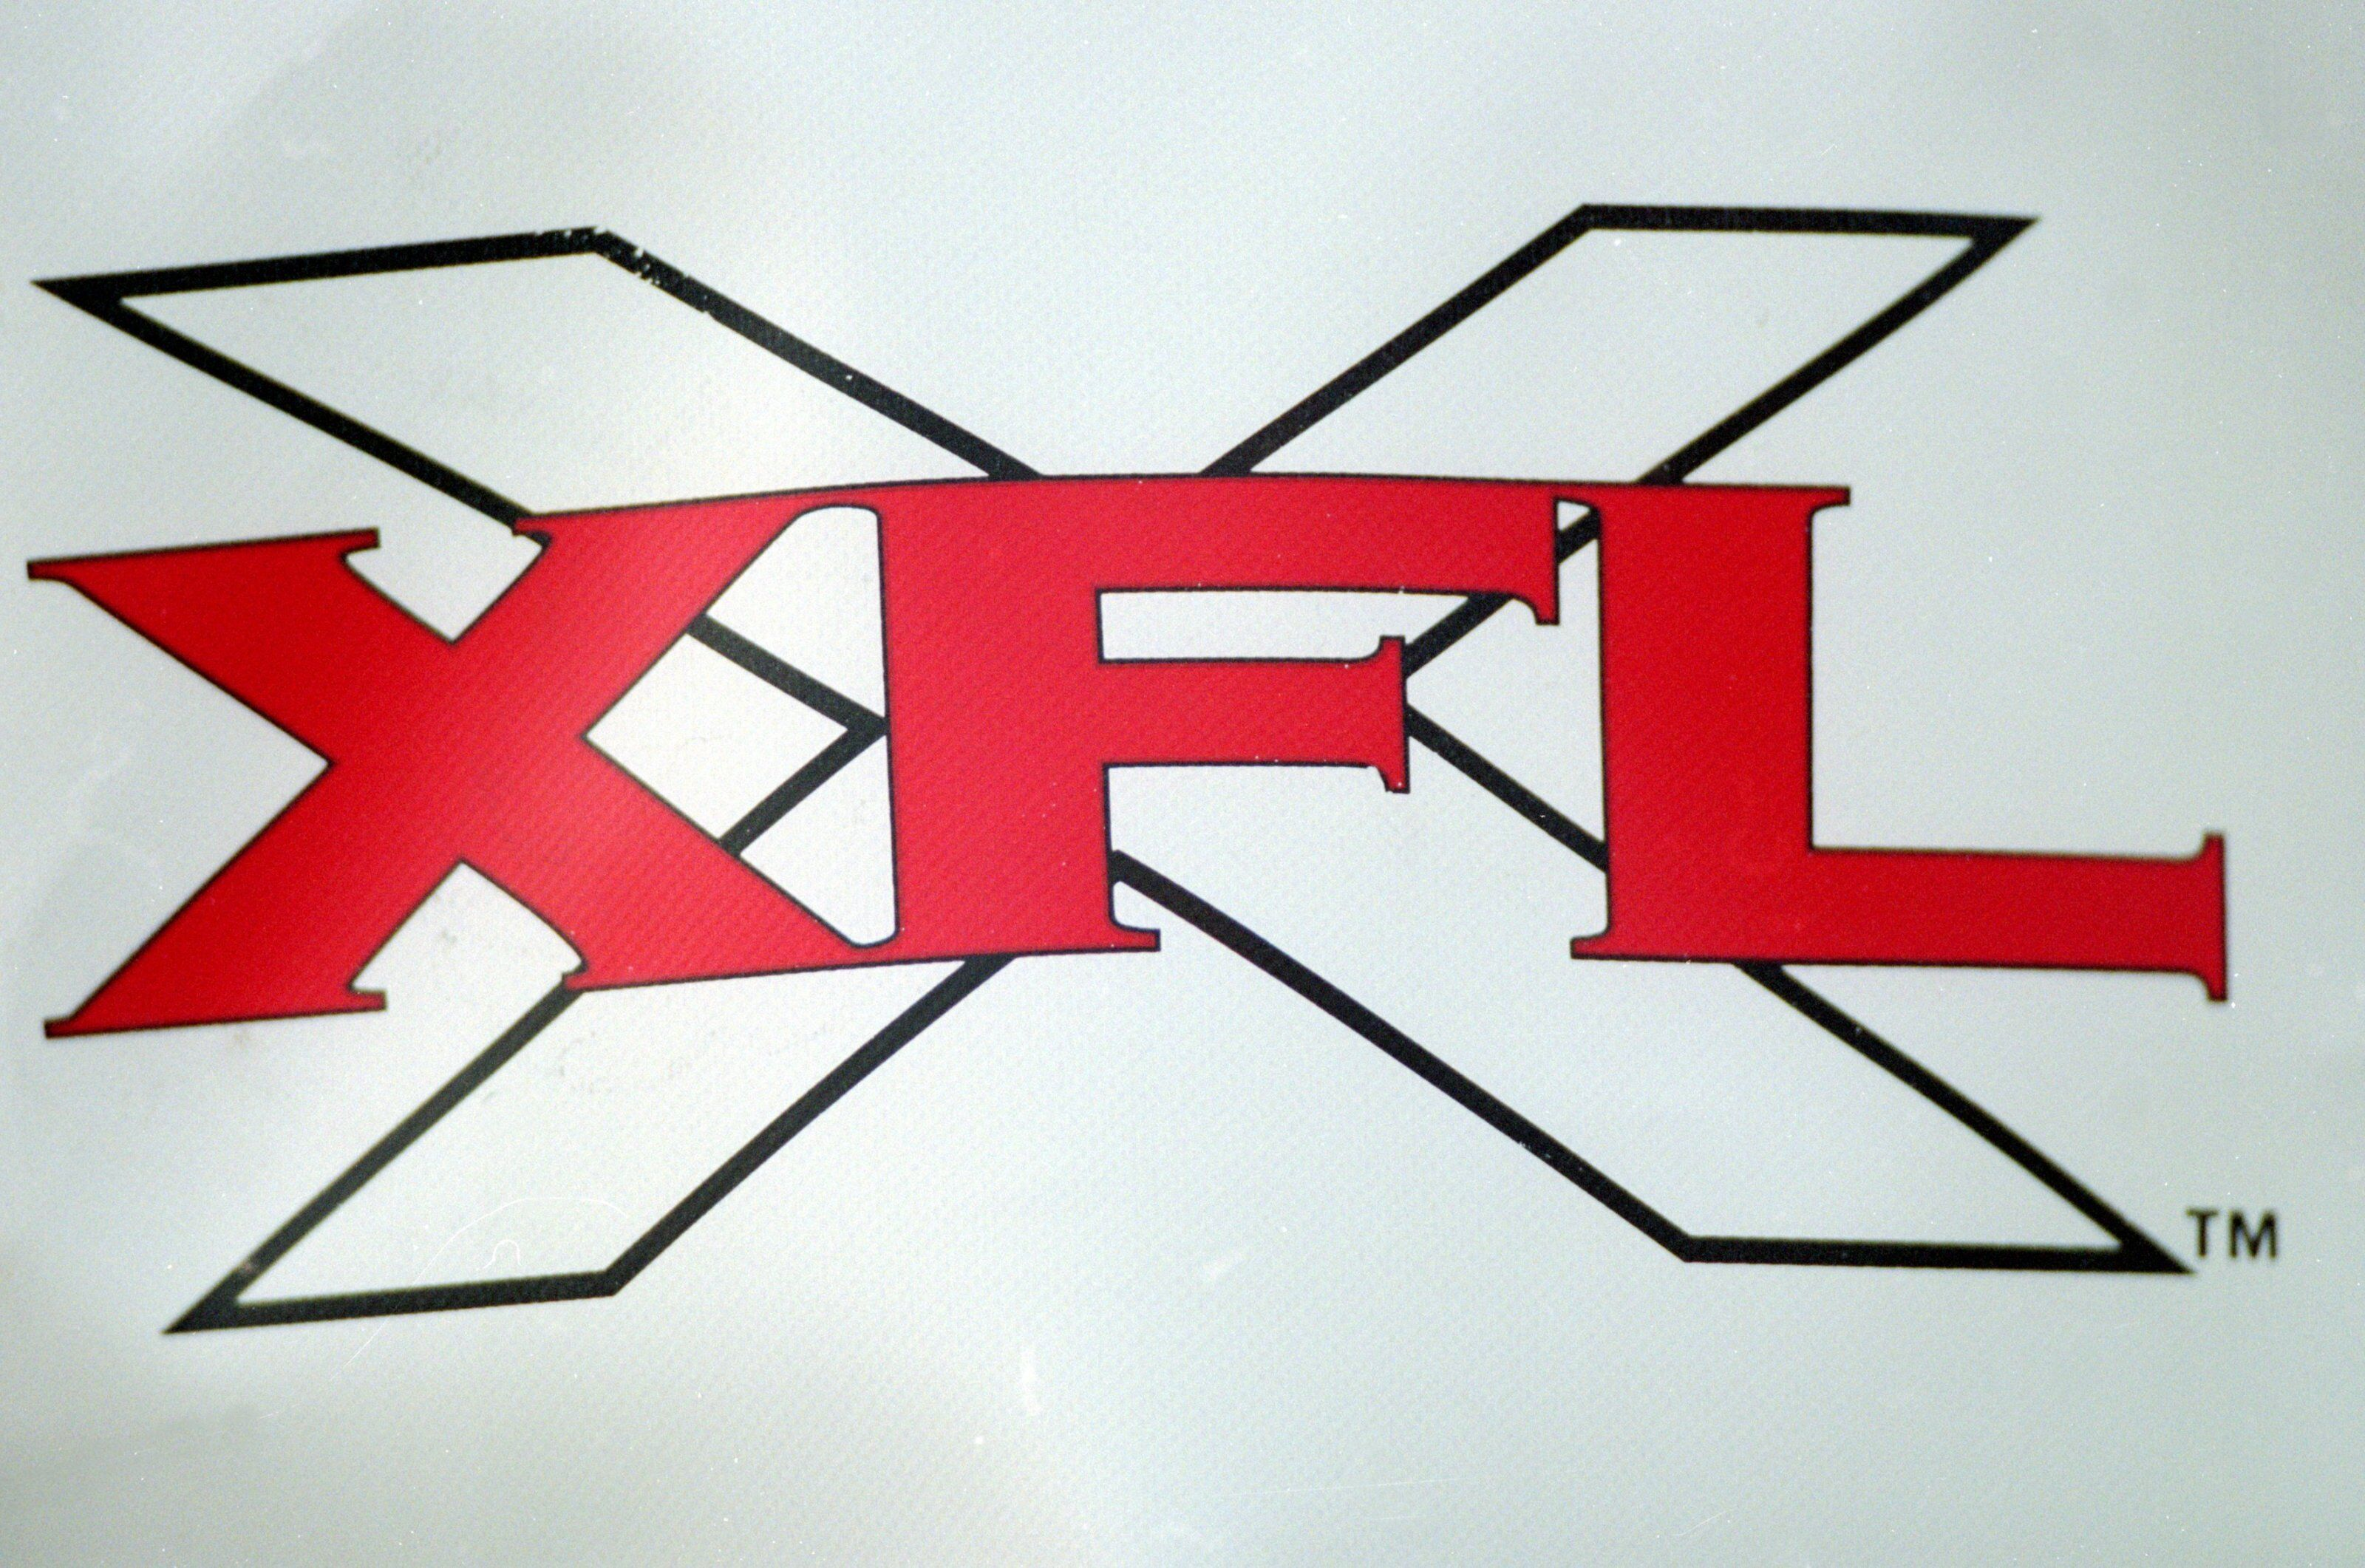 XFL: All the questions about the new XFL team names